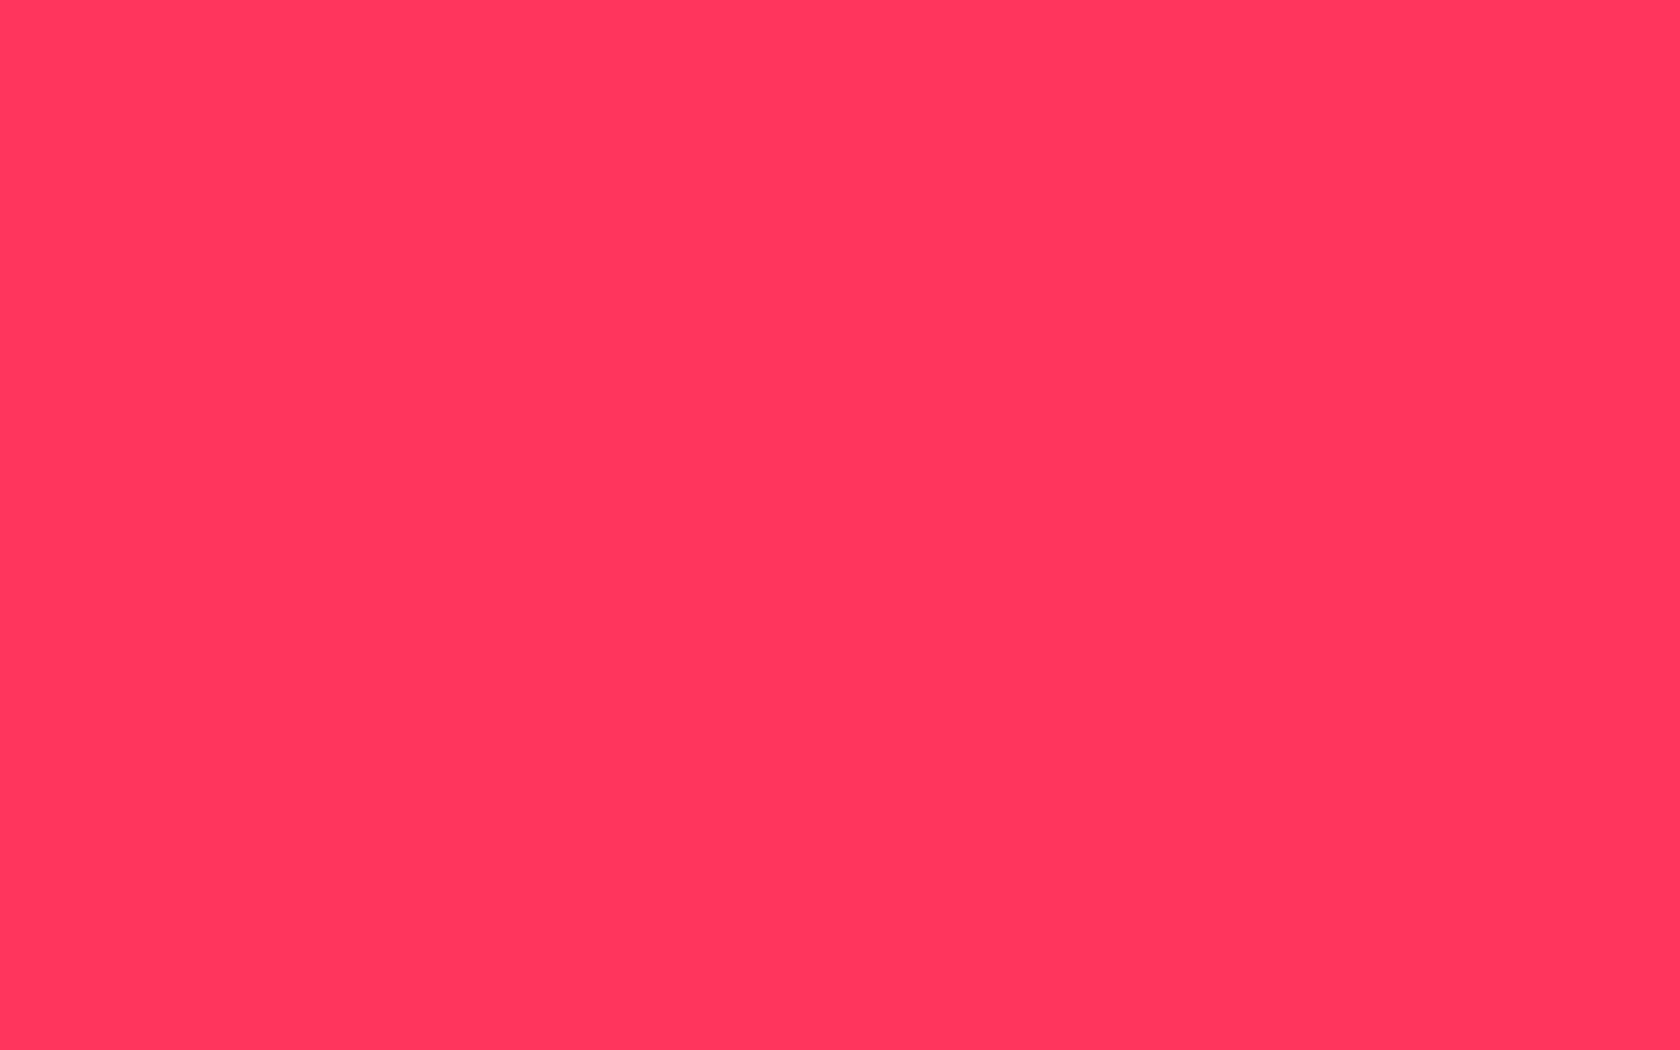 1680x1050 Radical Red Solid Color Background